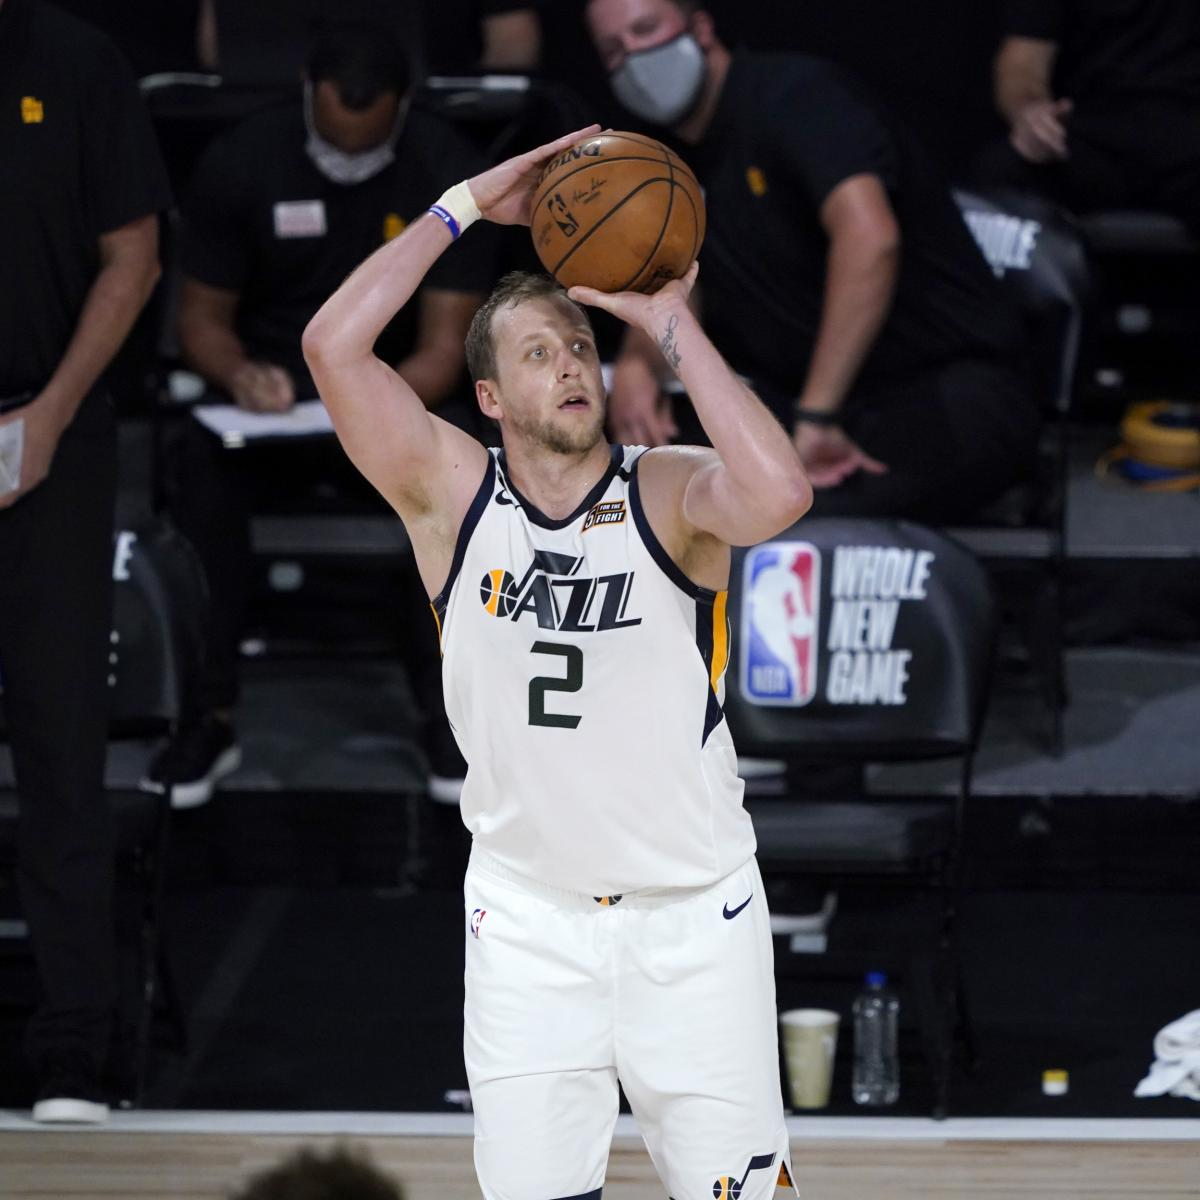 Jazz's Joe Ingles Says He'd Be Open to Returning to NBL After NBA Career Ends